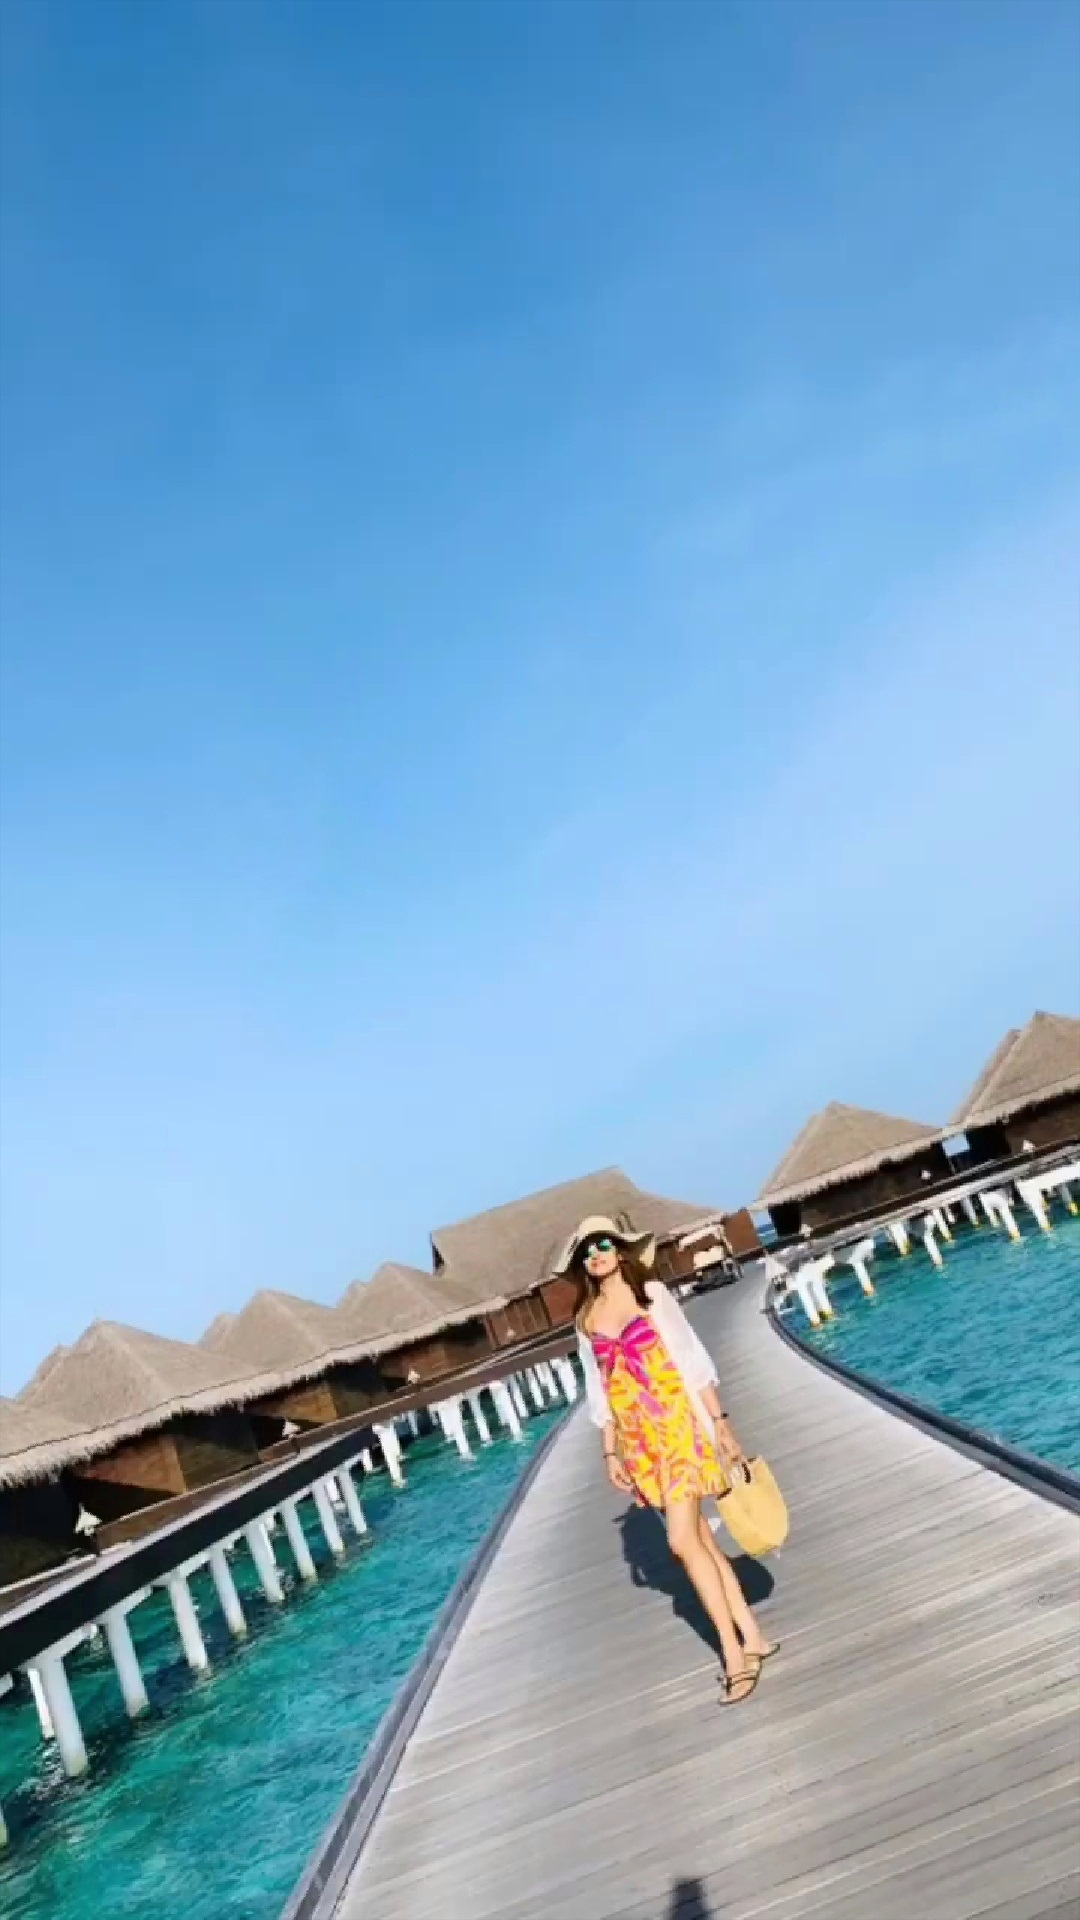 Trisha Hot In Swimsuit And Enjoying Her Vacation In Maldives